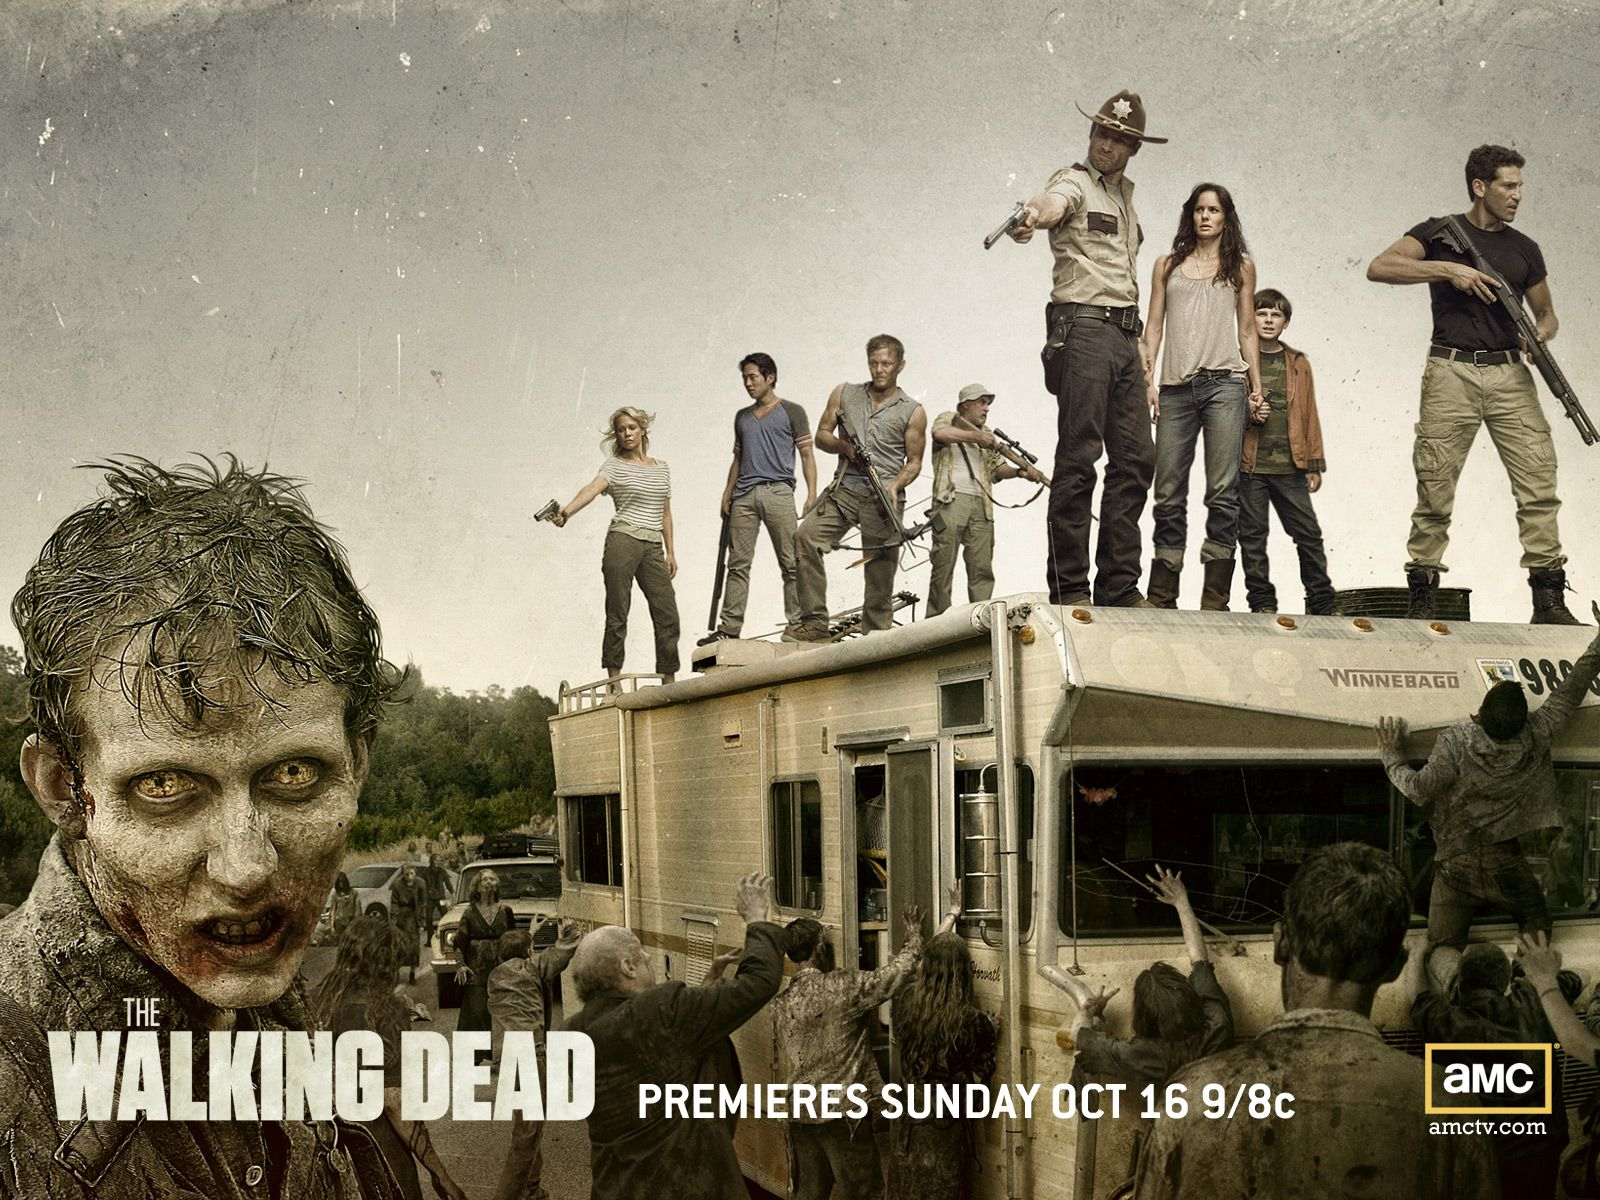 The Walking Dead Season 2 Sezonul 2 Wallpaper 2 Jpg 1600 1200